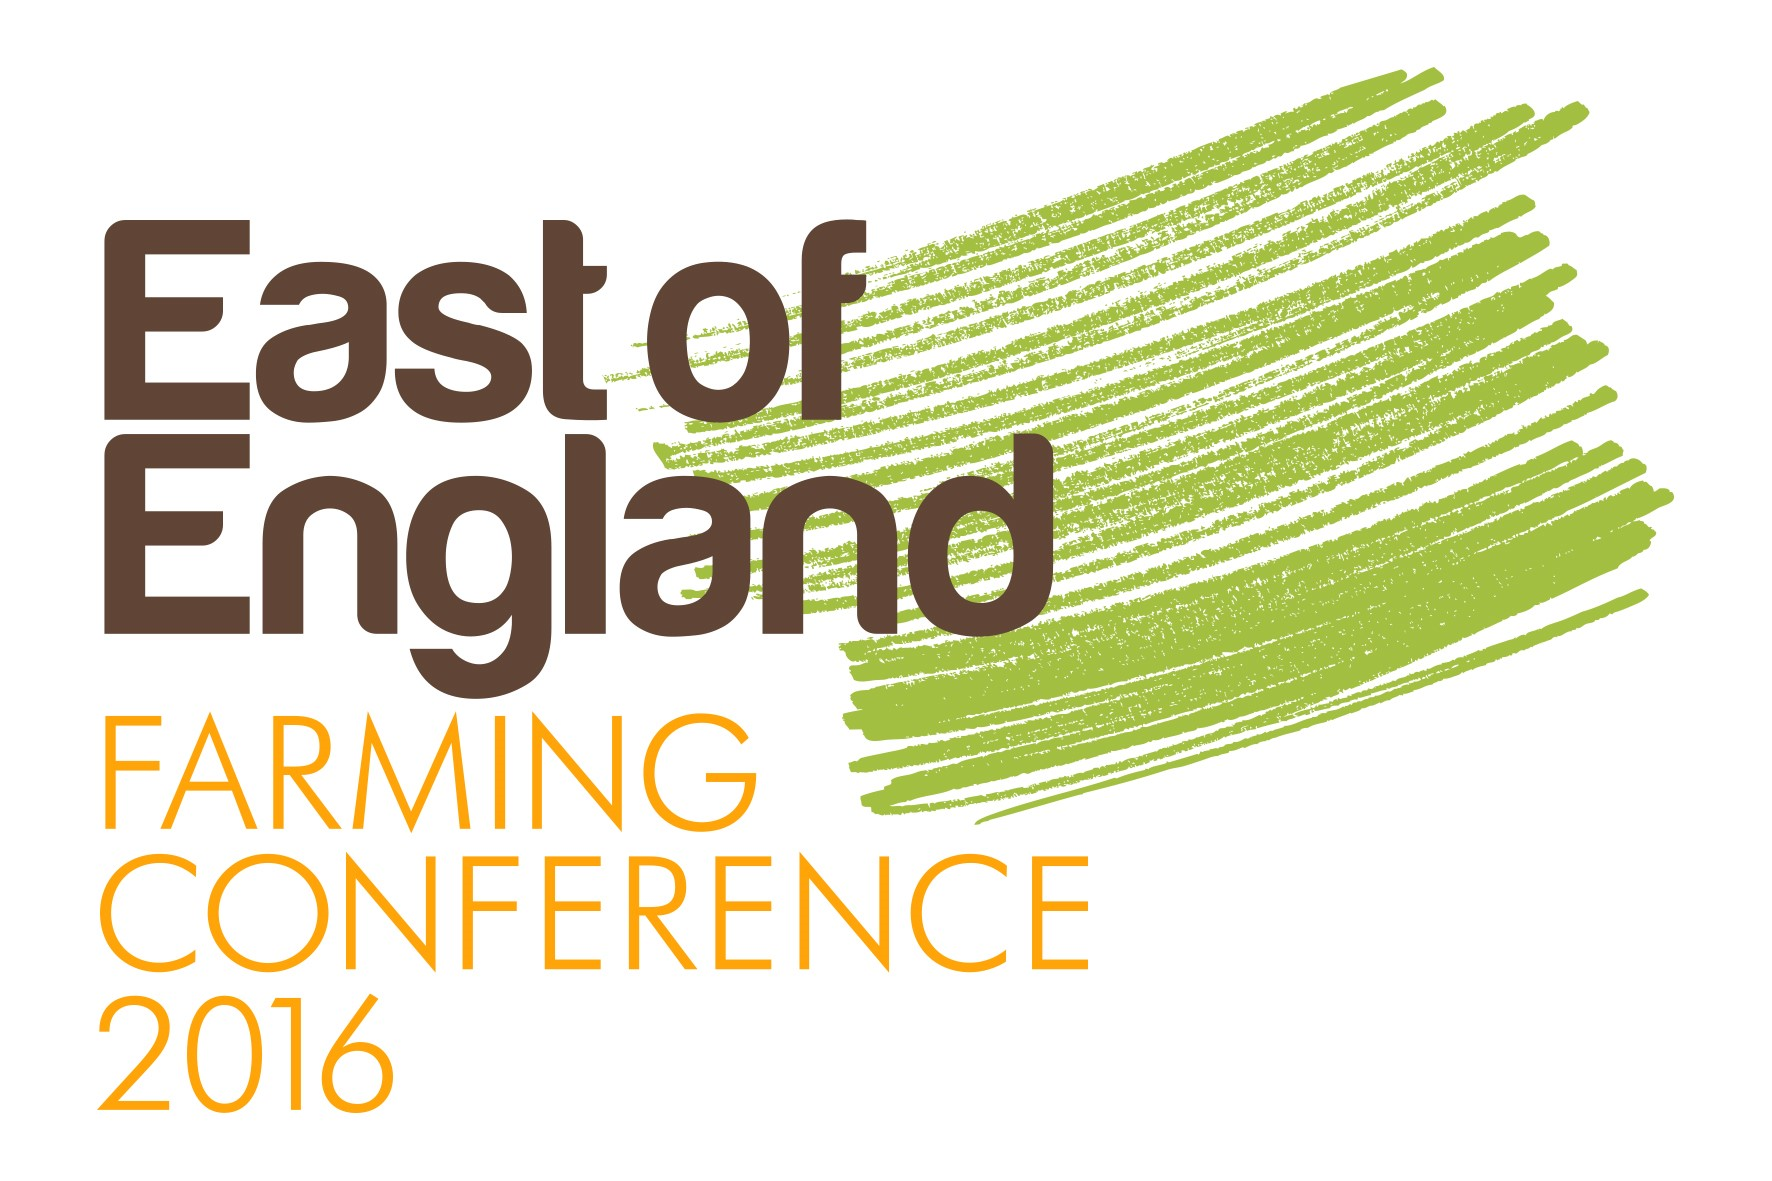 East of England Farming Conference 2016 - East of England Agricultural Society